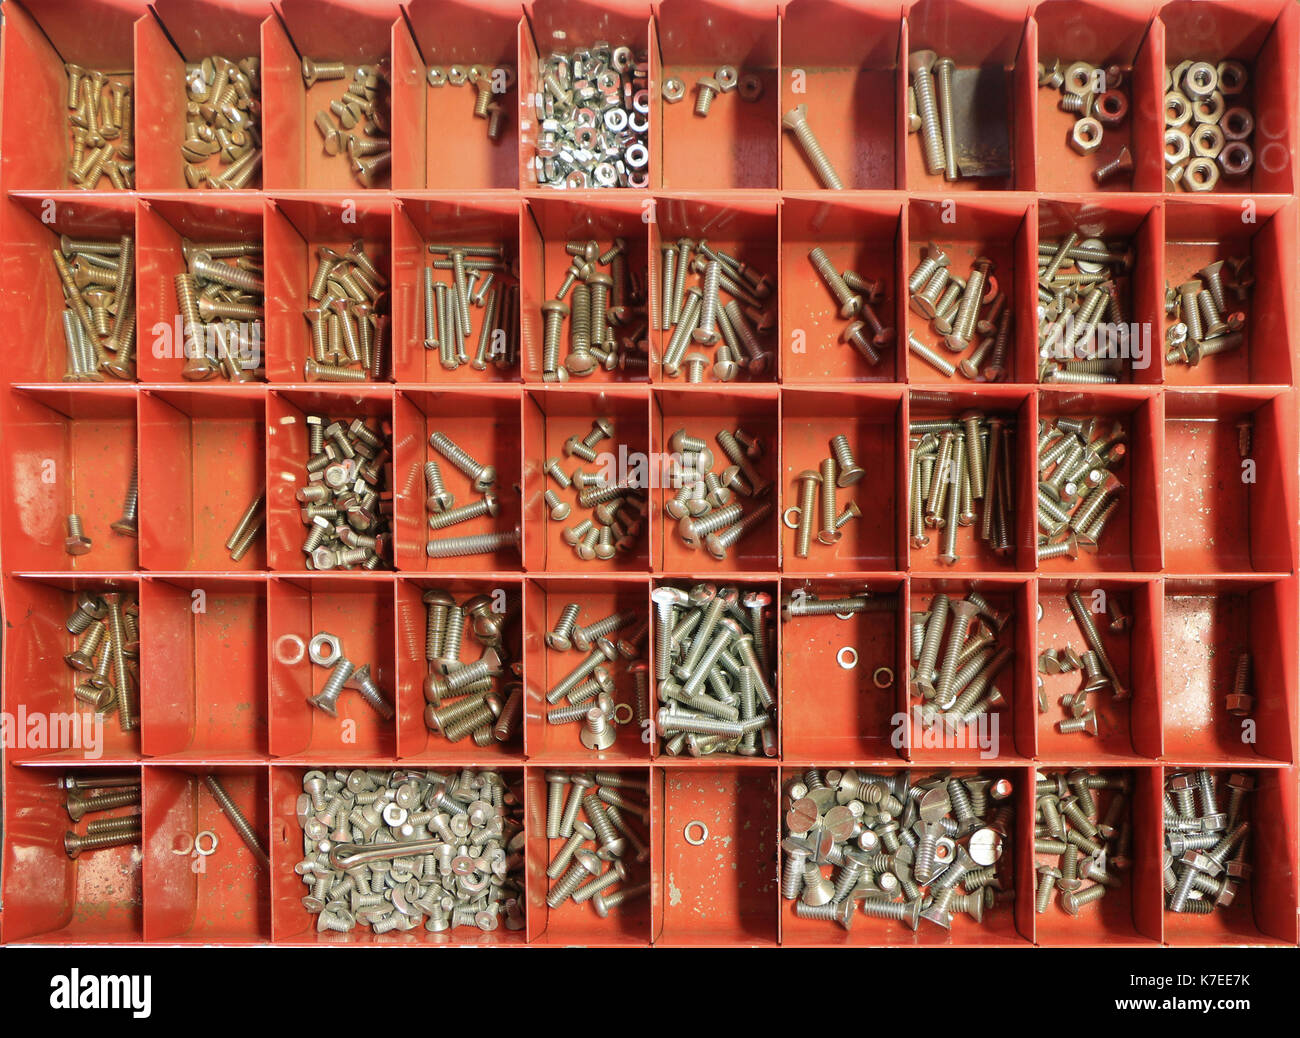 Tray of assorted bolts - Stock Image